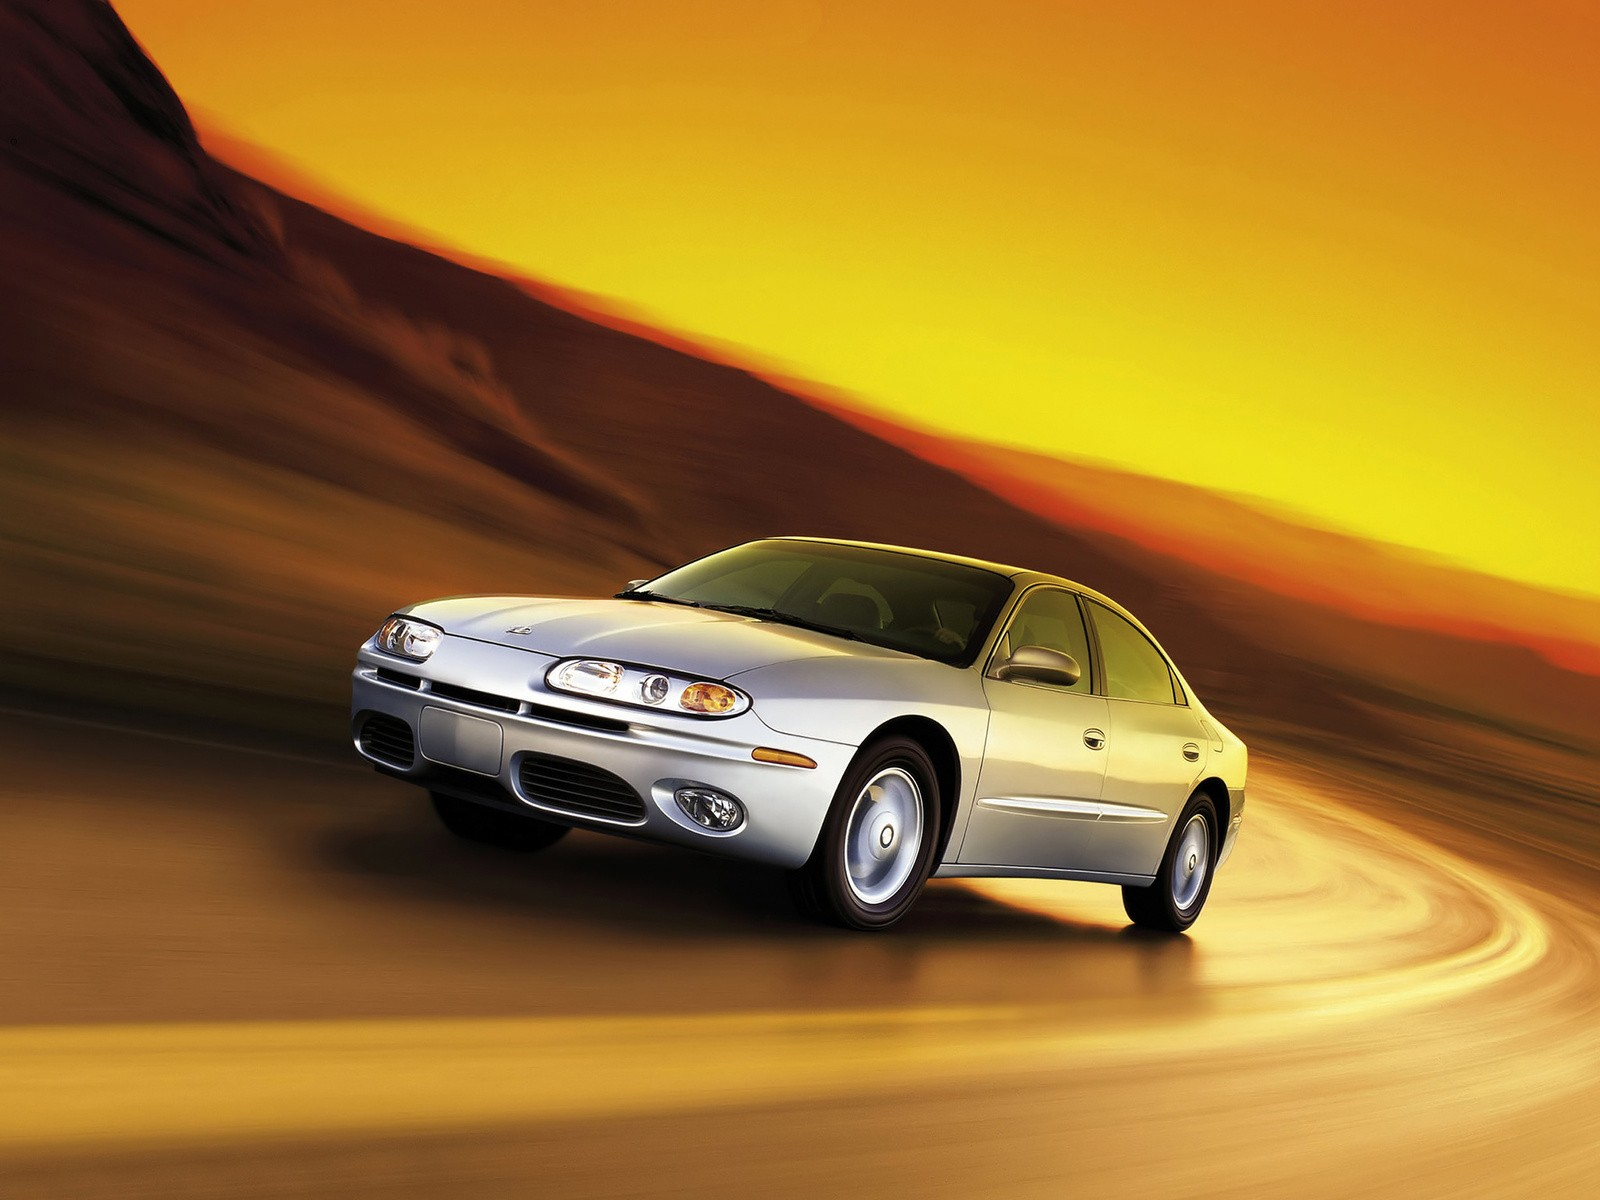 Oldsmobile Aurora on 2000 Cadillac V8